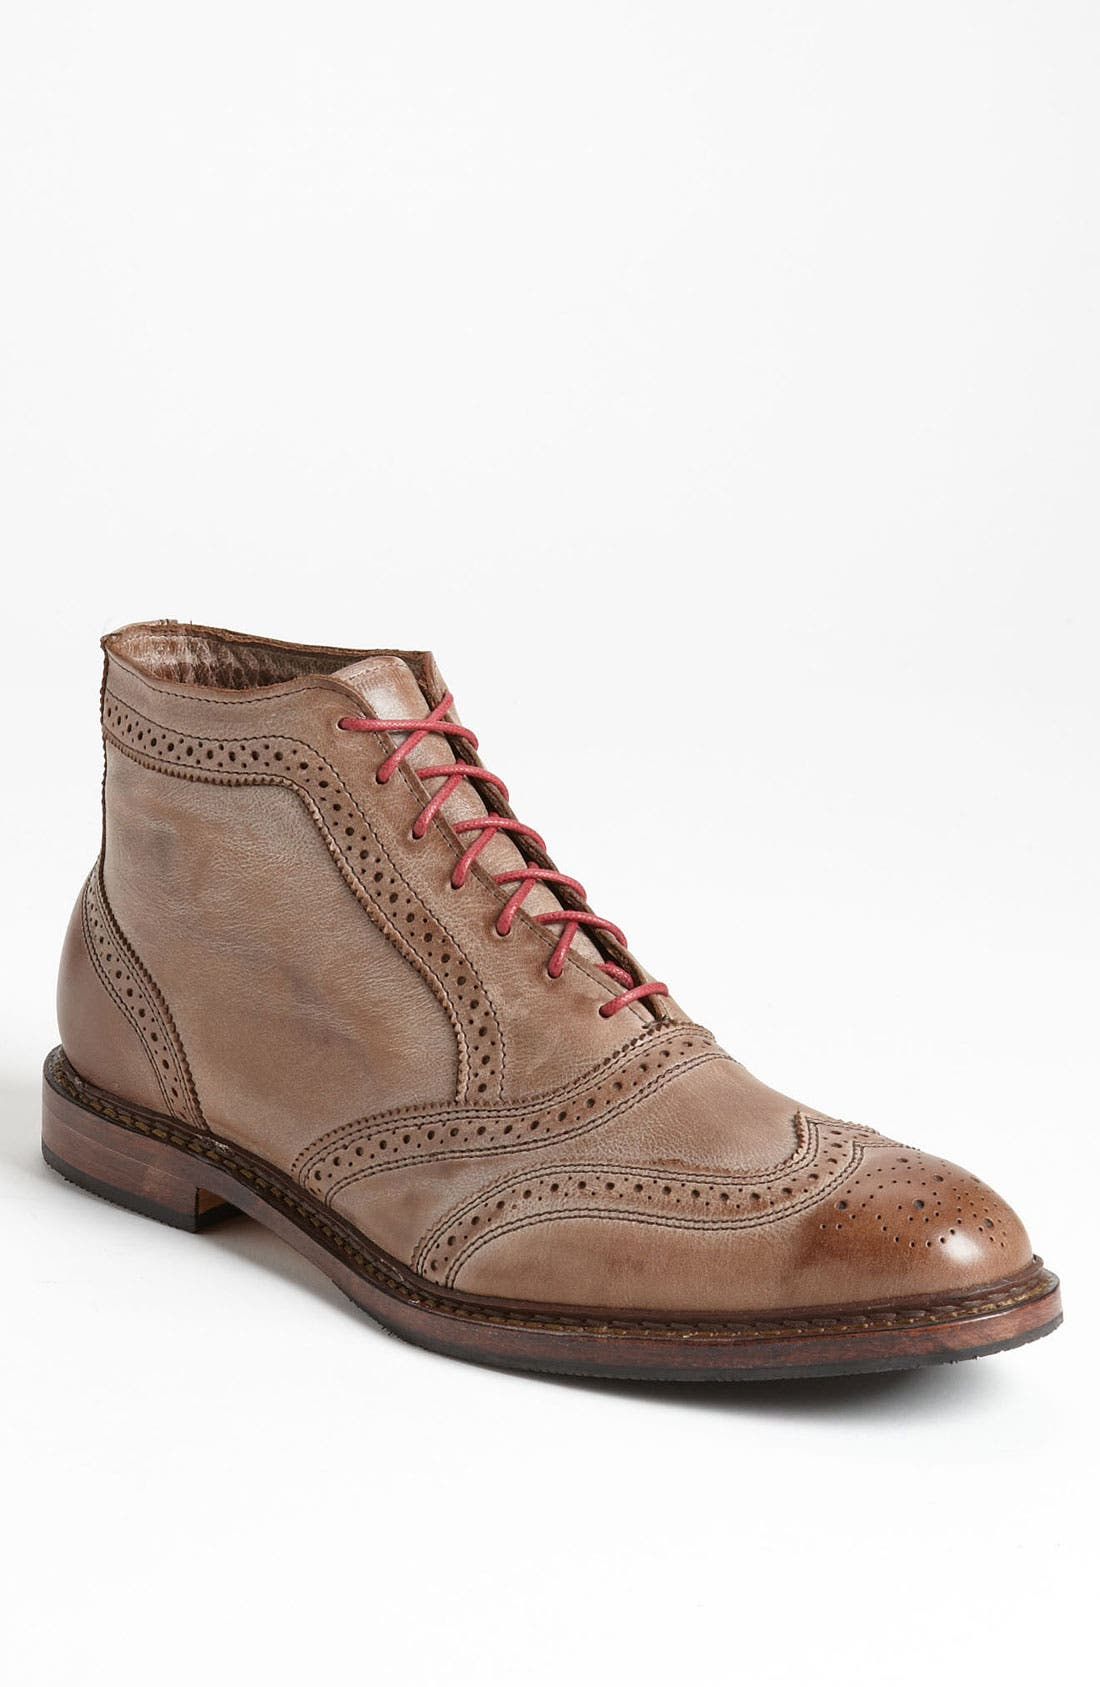 ALLEN EDMONDS 'Cronmok' Wingtip Boot, Main, color, 200